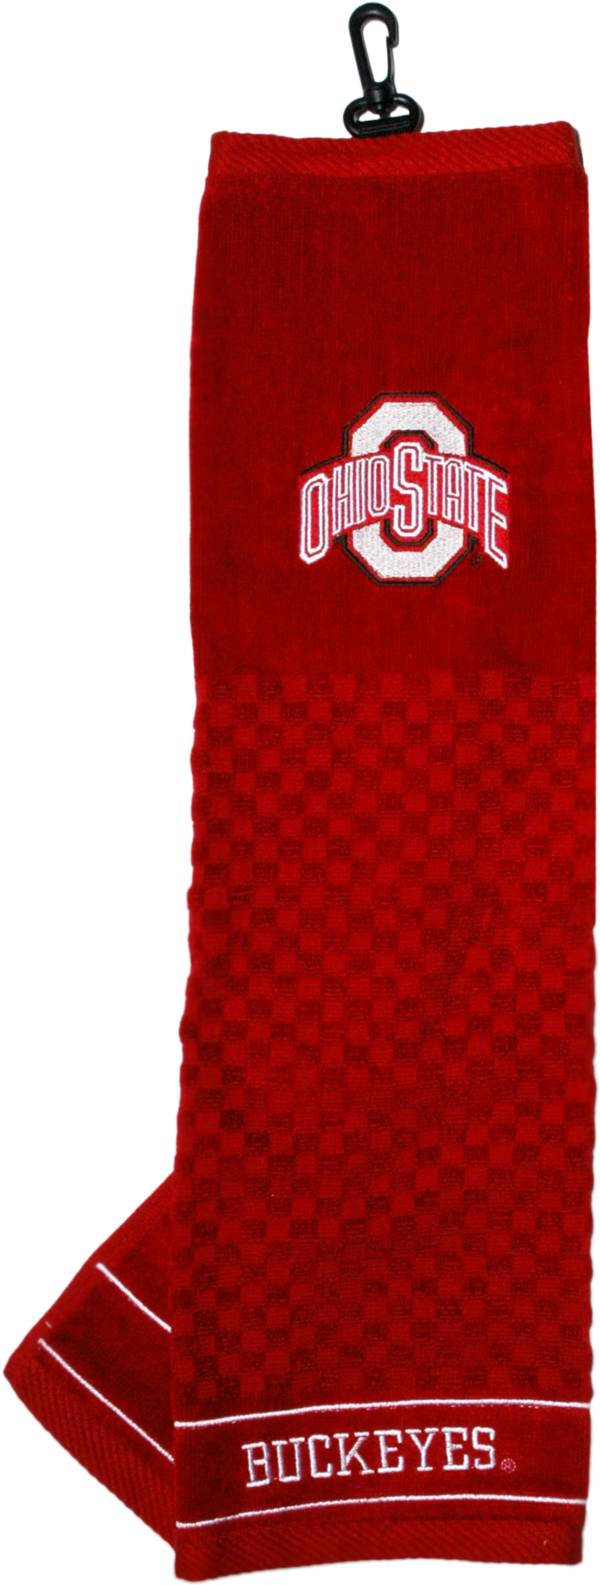 Team Golf Ohio State Buckeyes Embroidered Towel product image